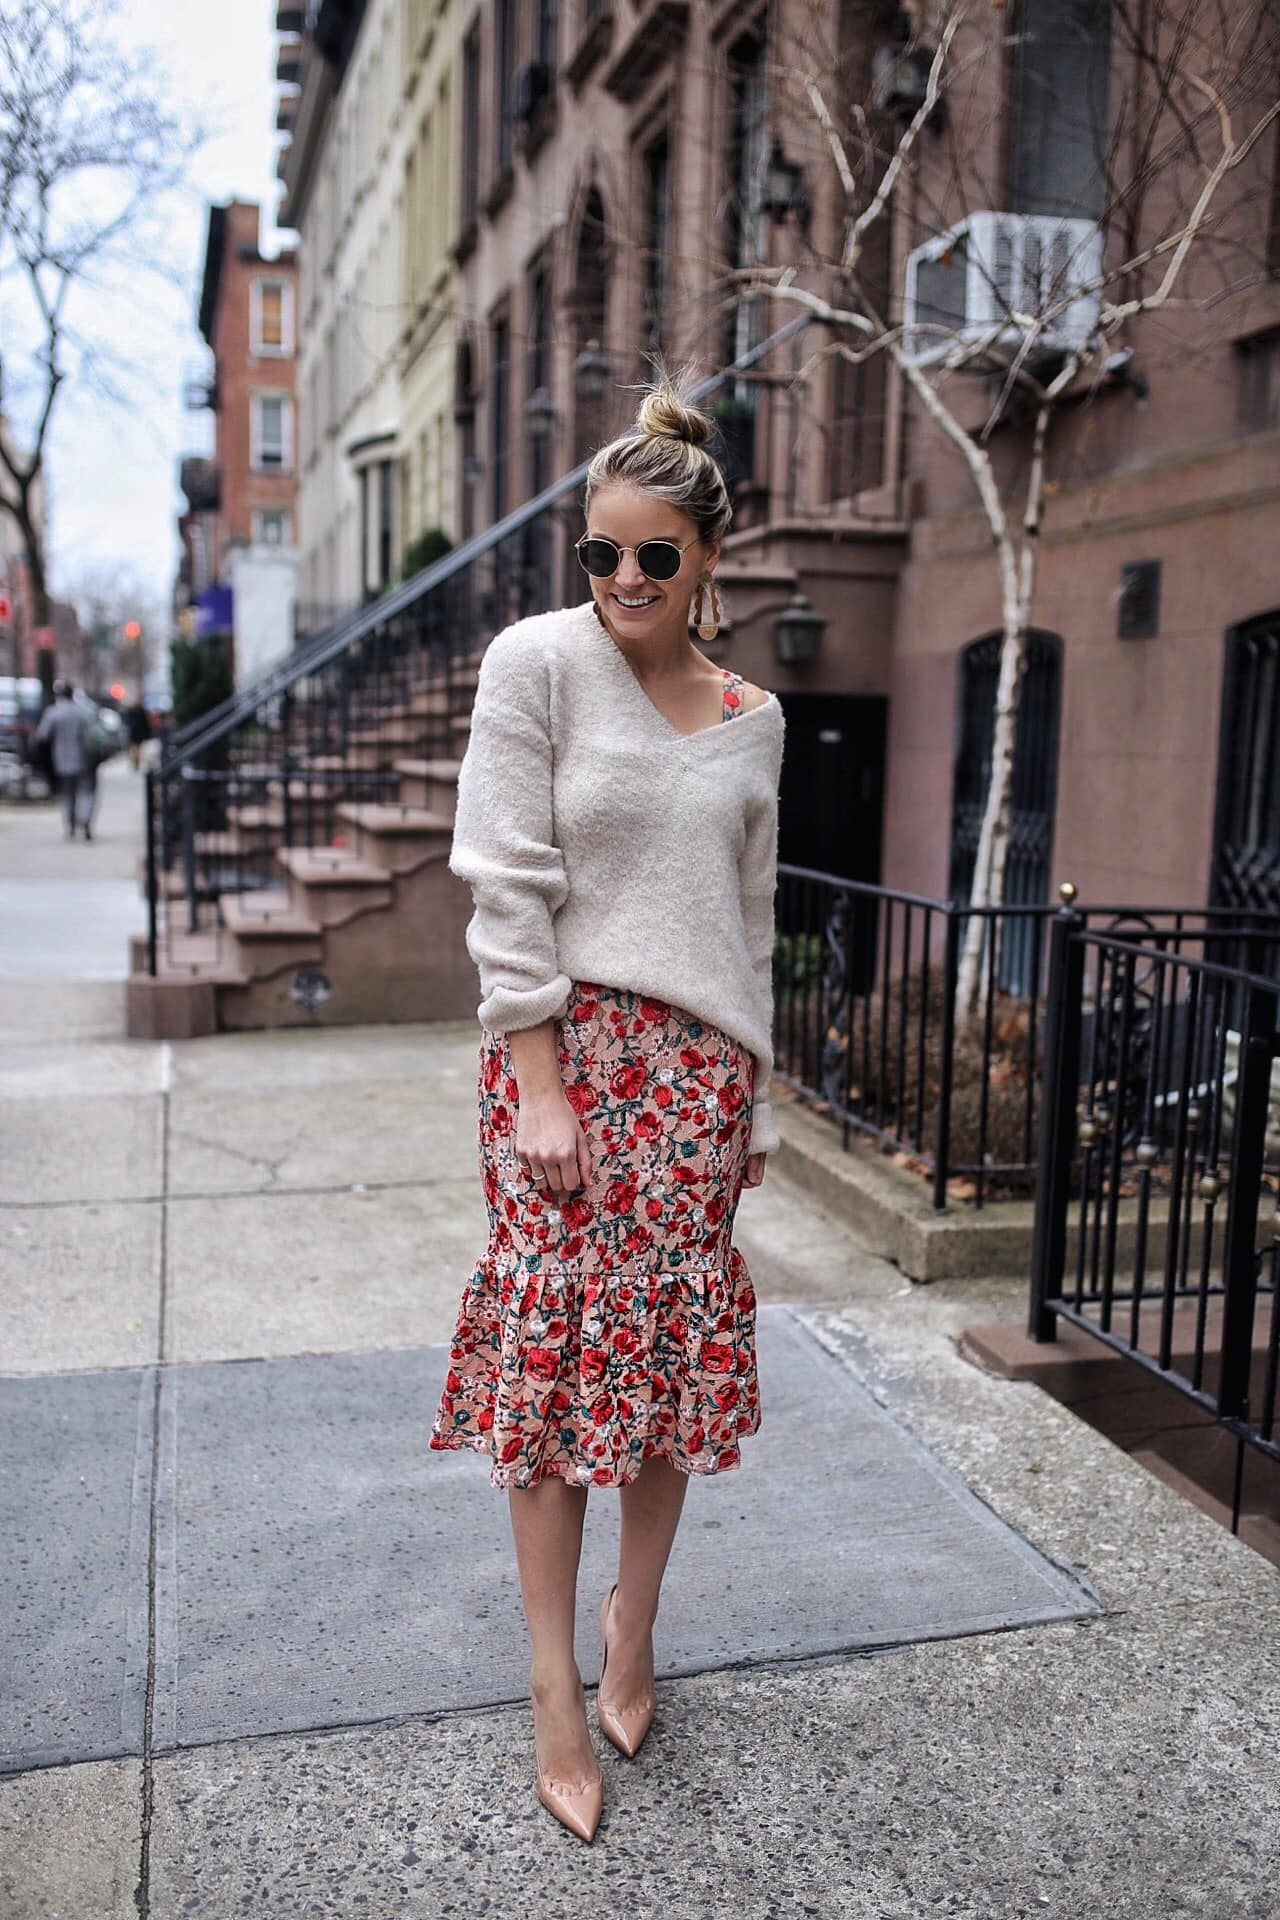 3 VALENTINES DAY OUTFIT IDEAS Styled Snapshots